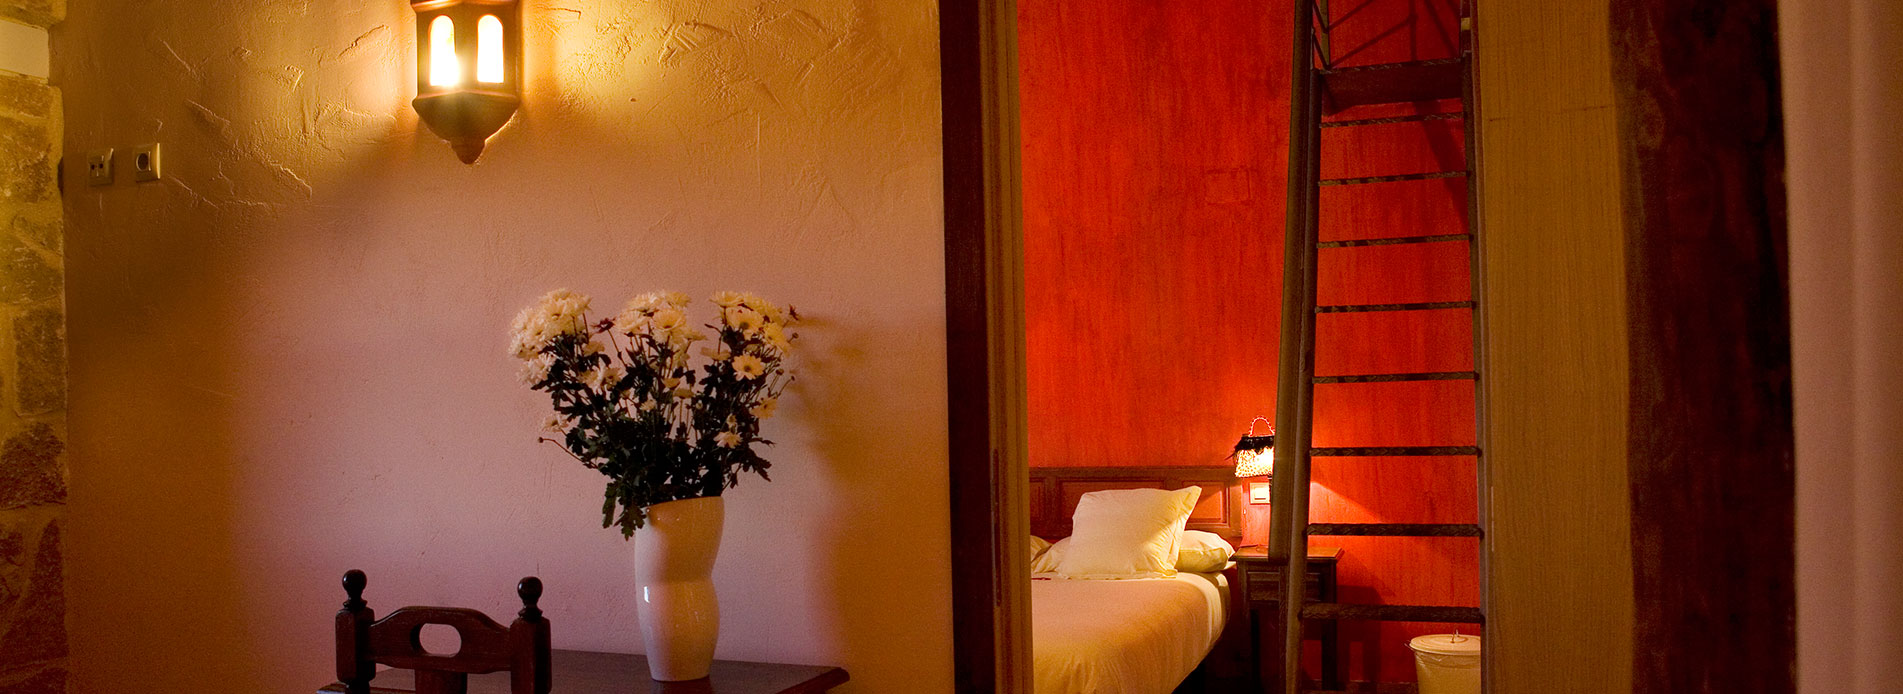 slider4-estancias-rurales-charming-hotels-segovia